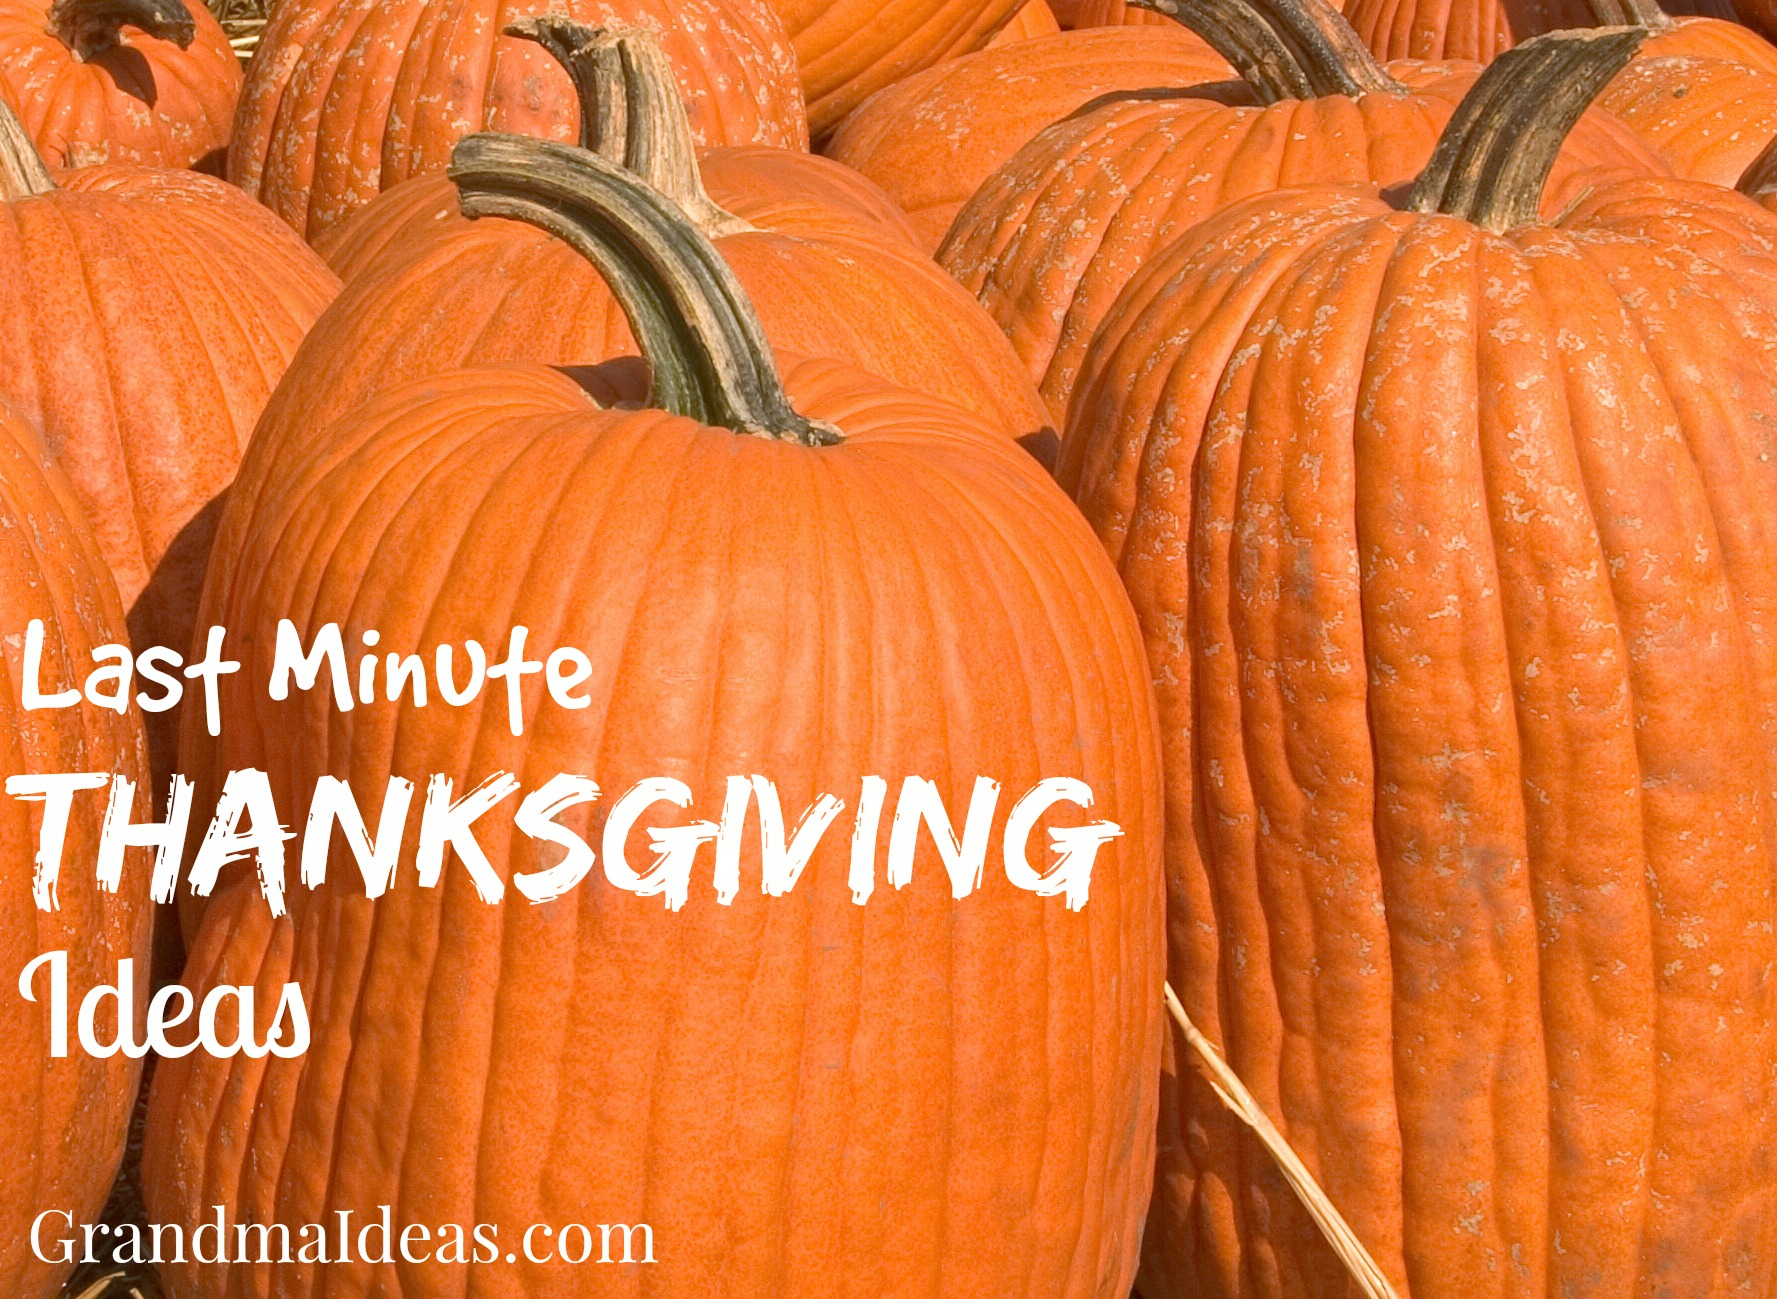 Last minute Thanksgiving ideas. GrandmaIdeas.com